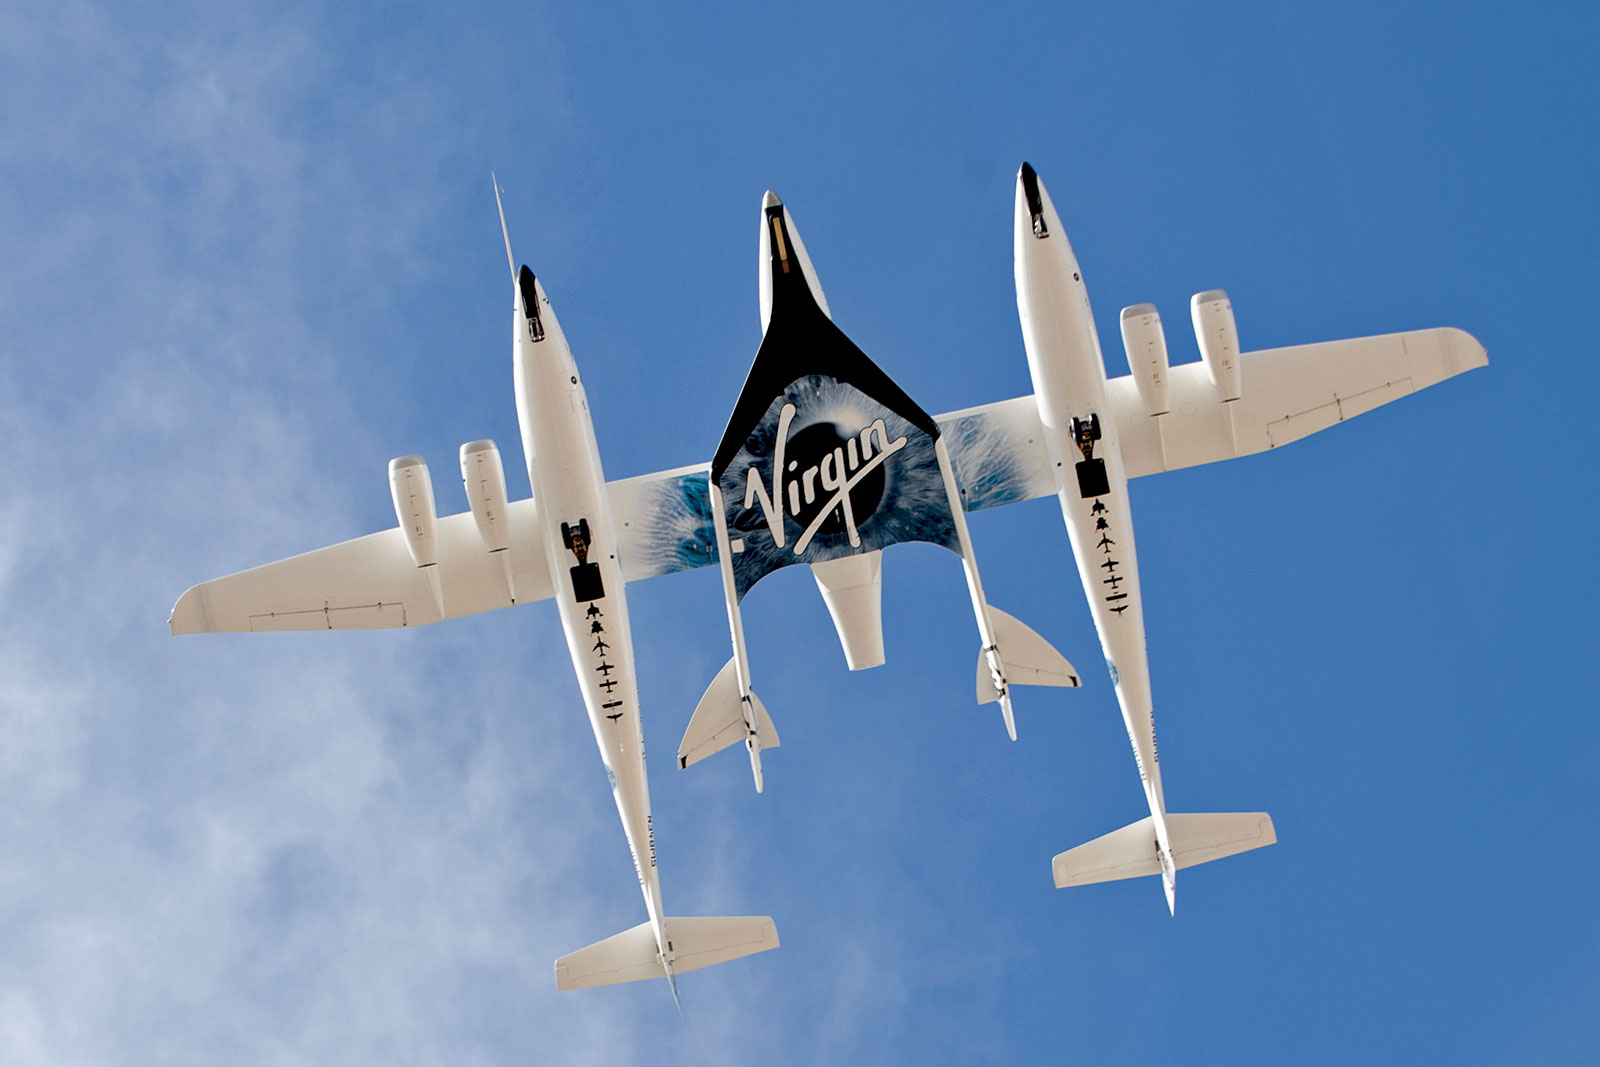 http://airpigz.squarespace.com/storage/hi-res/Virgin_Galactic_WK2_SS2_From_Underneath.jpg